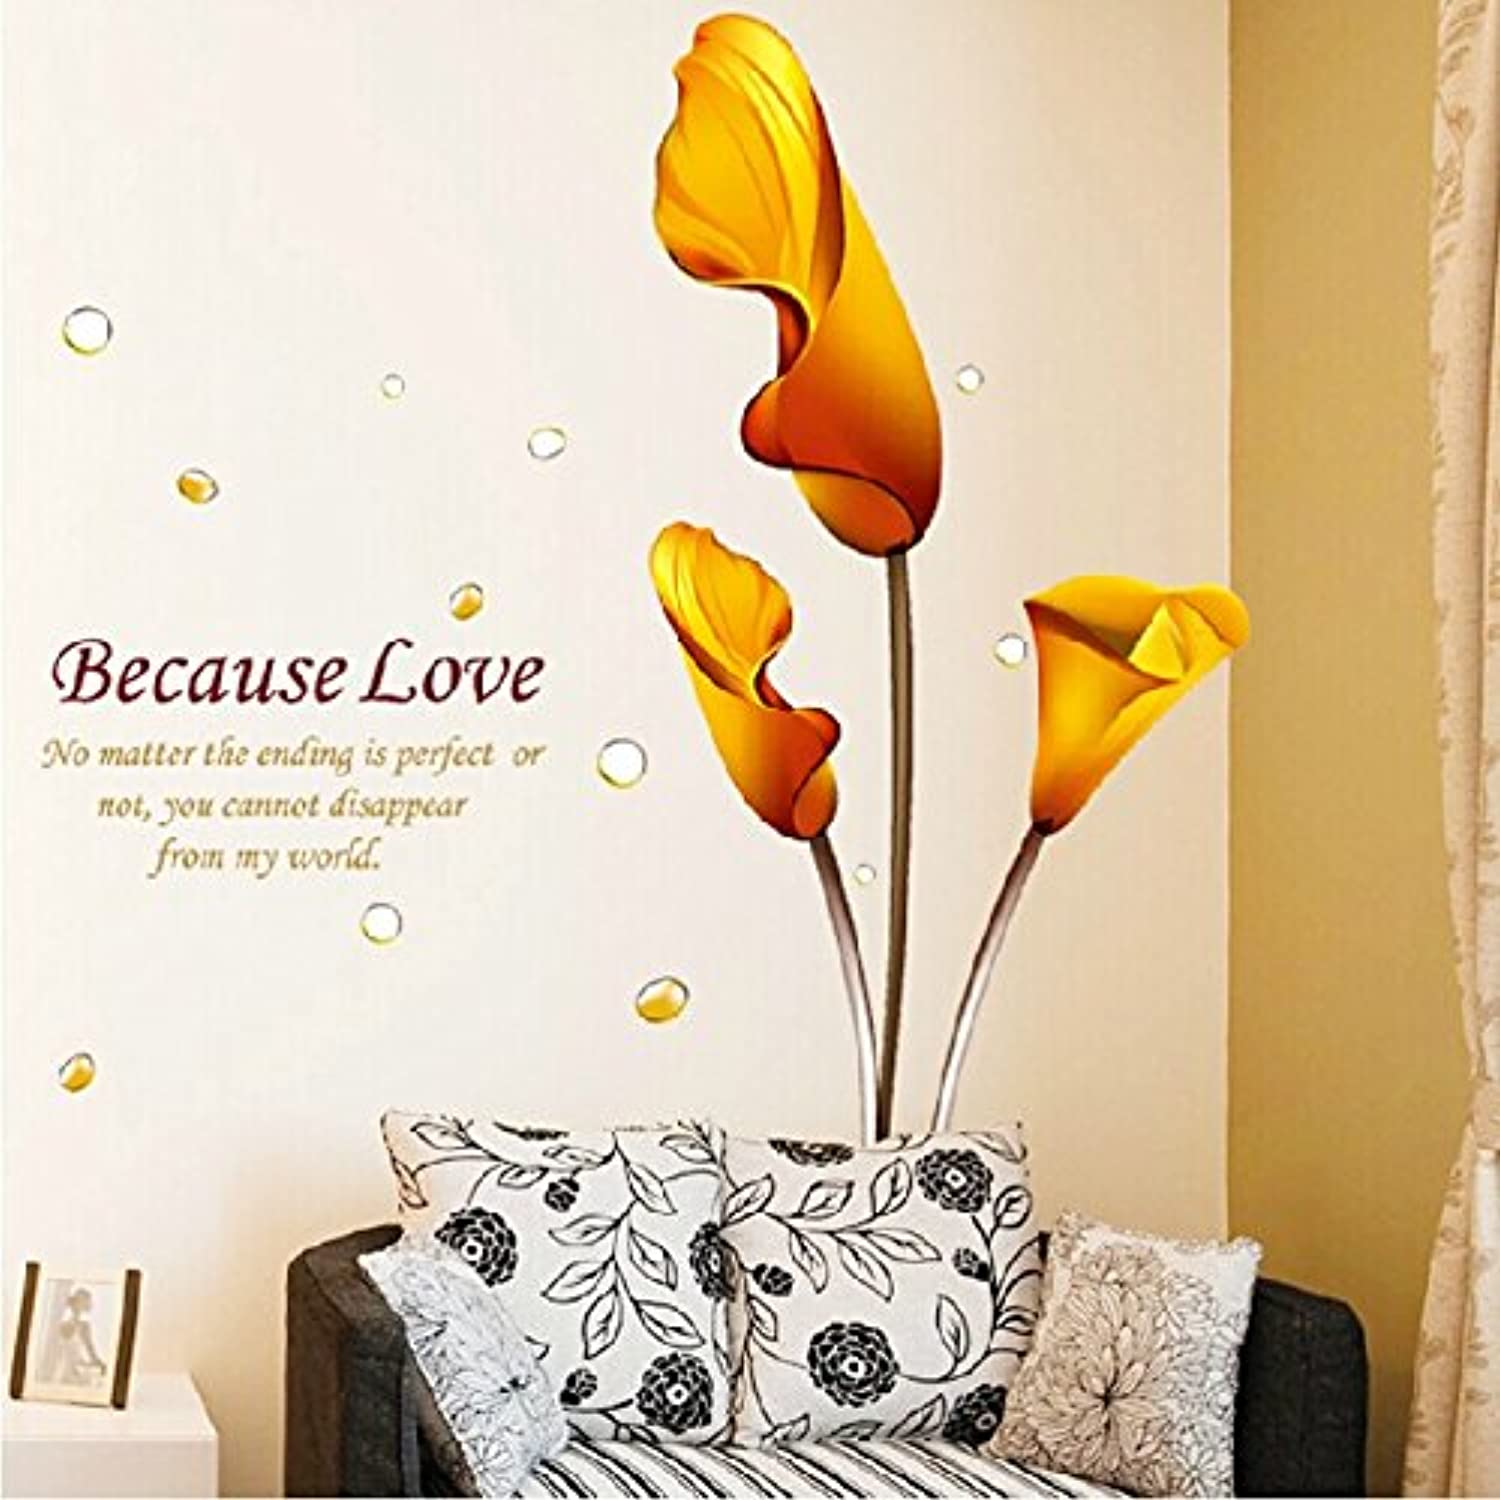 Znzbzt shoes-lin Living Room Wall Paper Art self Adhesive Background Wall Wall Removable Wall Decals